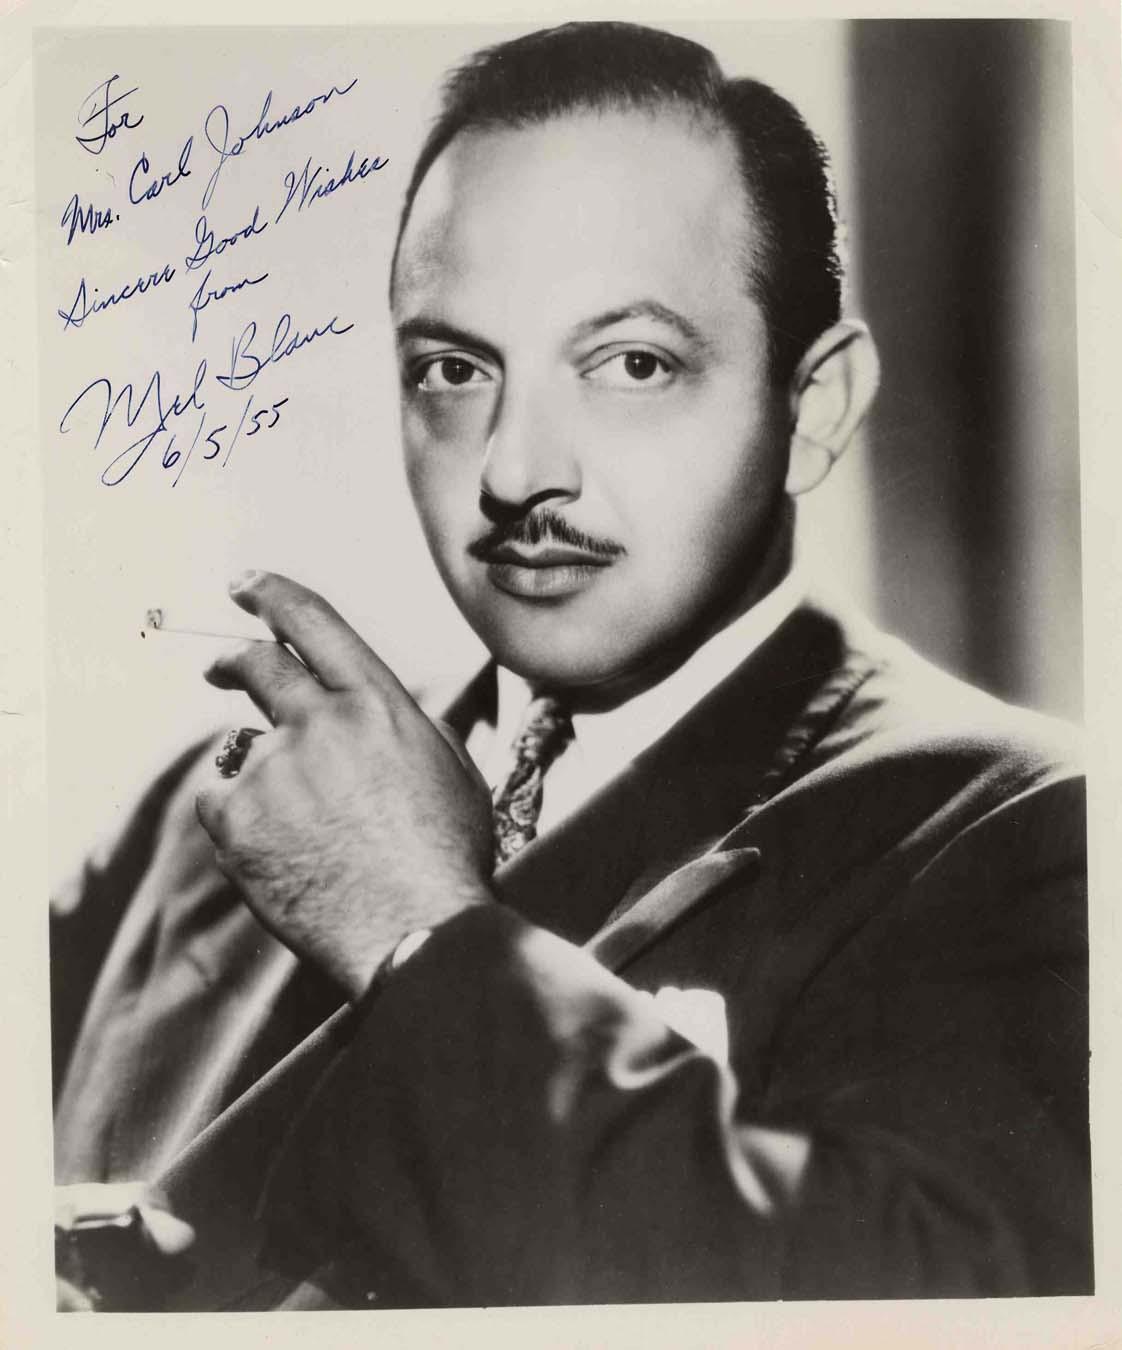 mel blanc voices listmel blanc voices, mel blanc wiki, mel blanc the man of a thousand voices, mel blanc height, mel blanc biography, mel blanc, mel blanc coma, mel blanc tombstone, mel blanc speechless, mel blanc imdb, mel blanc blue christmas, mel blanc jr, mel blanc behind the voice actors, mel blanc net worth, mel blanc notably, mel blanc christmas song, mel blanc youtube, mel blanc characters, mel blanc voices list, mel blanc si